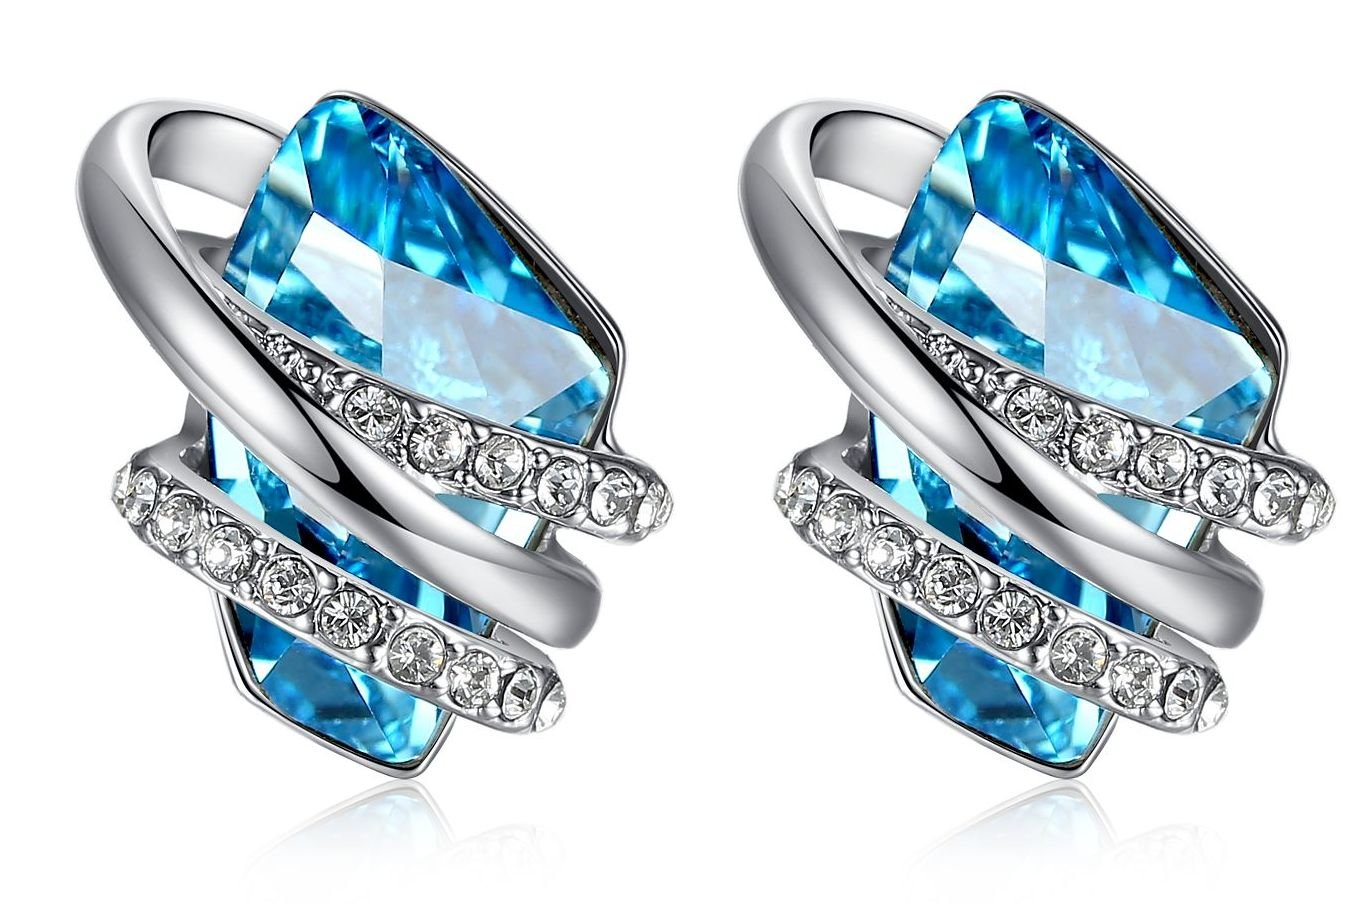 Leafael [Presented by Miss New York] Wish Stone Made with Swarovski Crystals Focal Shape Silver-tone Blue Earrings, Nickel/Lead/Allergy Free, Luxury Gift Box